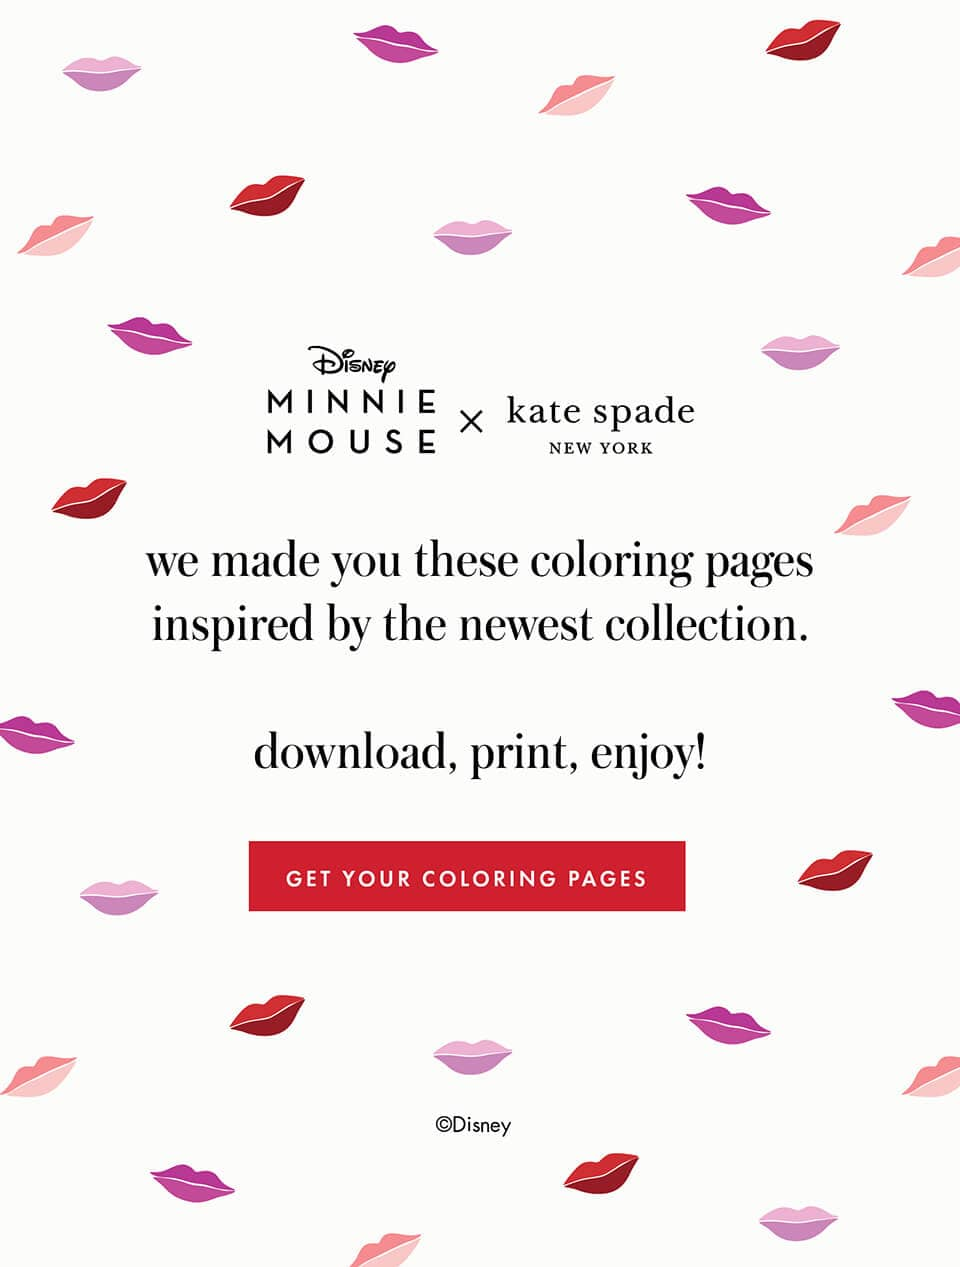 Disney Minnie Mouse x kate spade new york. we made you these coloring pages inspired by the newest collection.          download, print, enjoy! get your coloring pages.